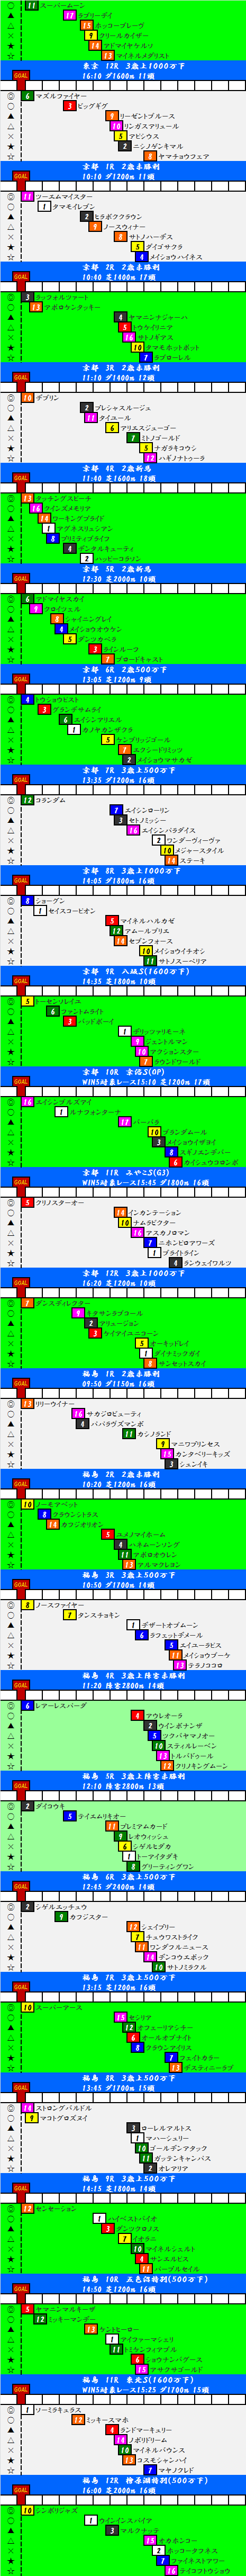 2014110902.png